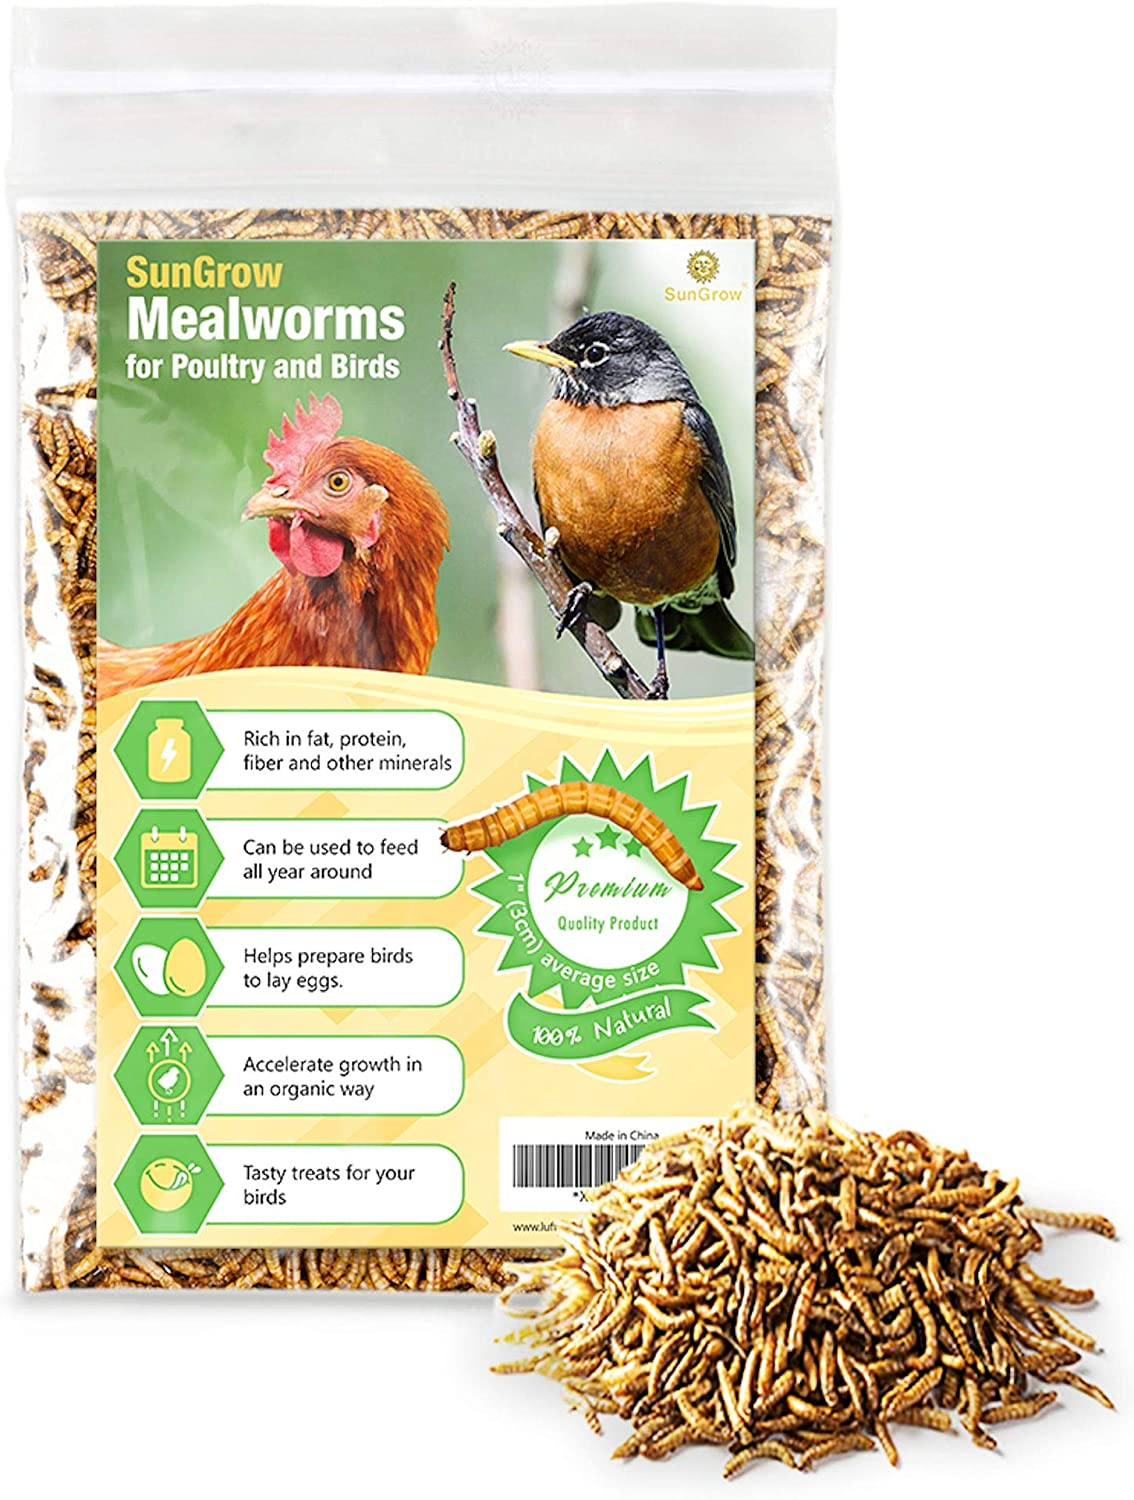 SunGrow High Protein Mealworms for Poultry and Wild Birds, Favorite Treat of Hedgehogs, Hamsters, and Other Pocket Pets, Nutritionally Packed for Squirrels and Frogs, Lizards, Snakes & Fish, 7 Oz